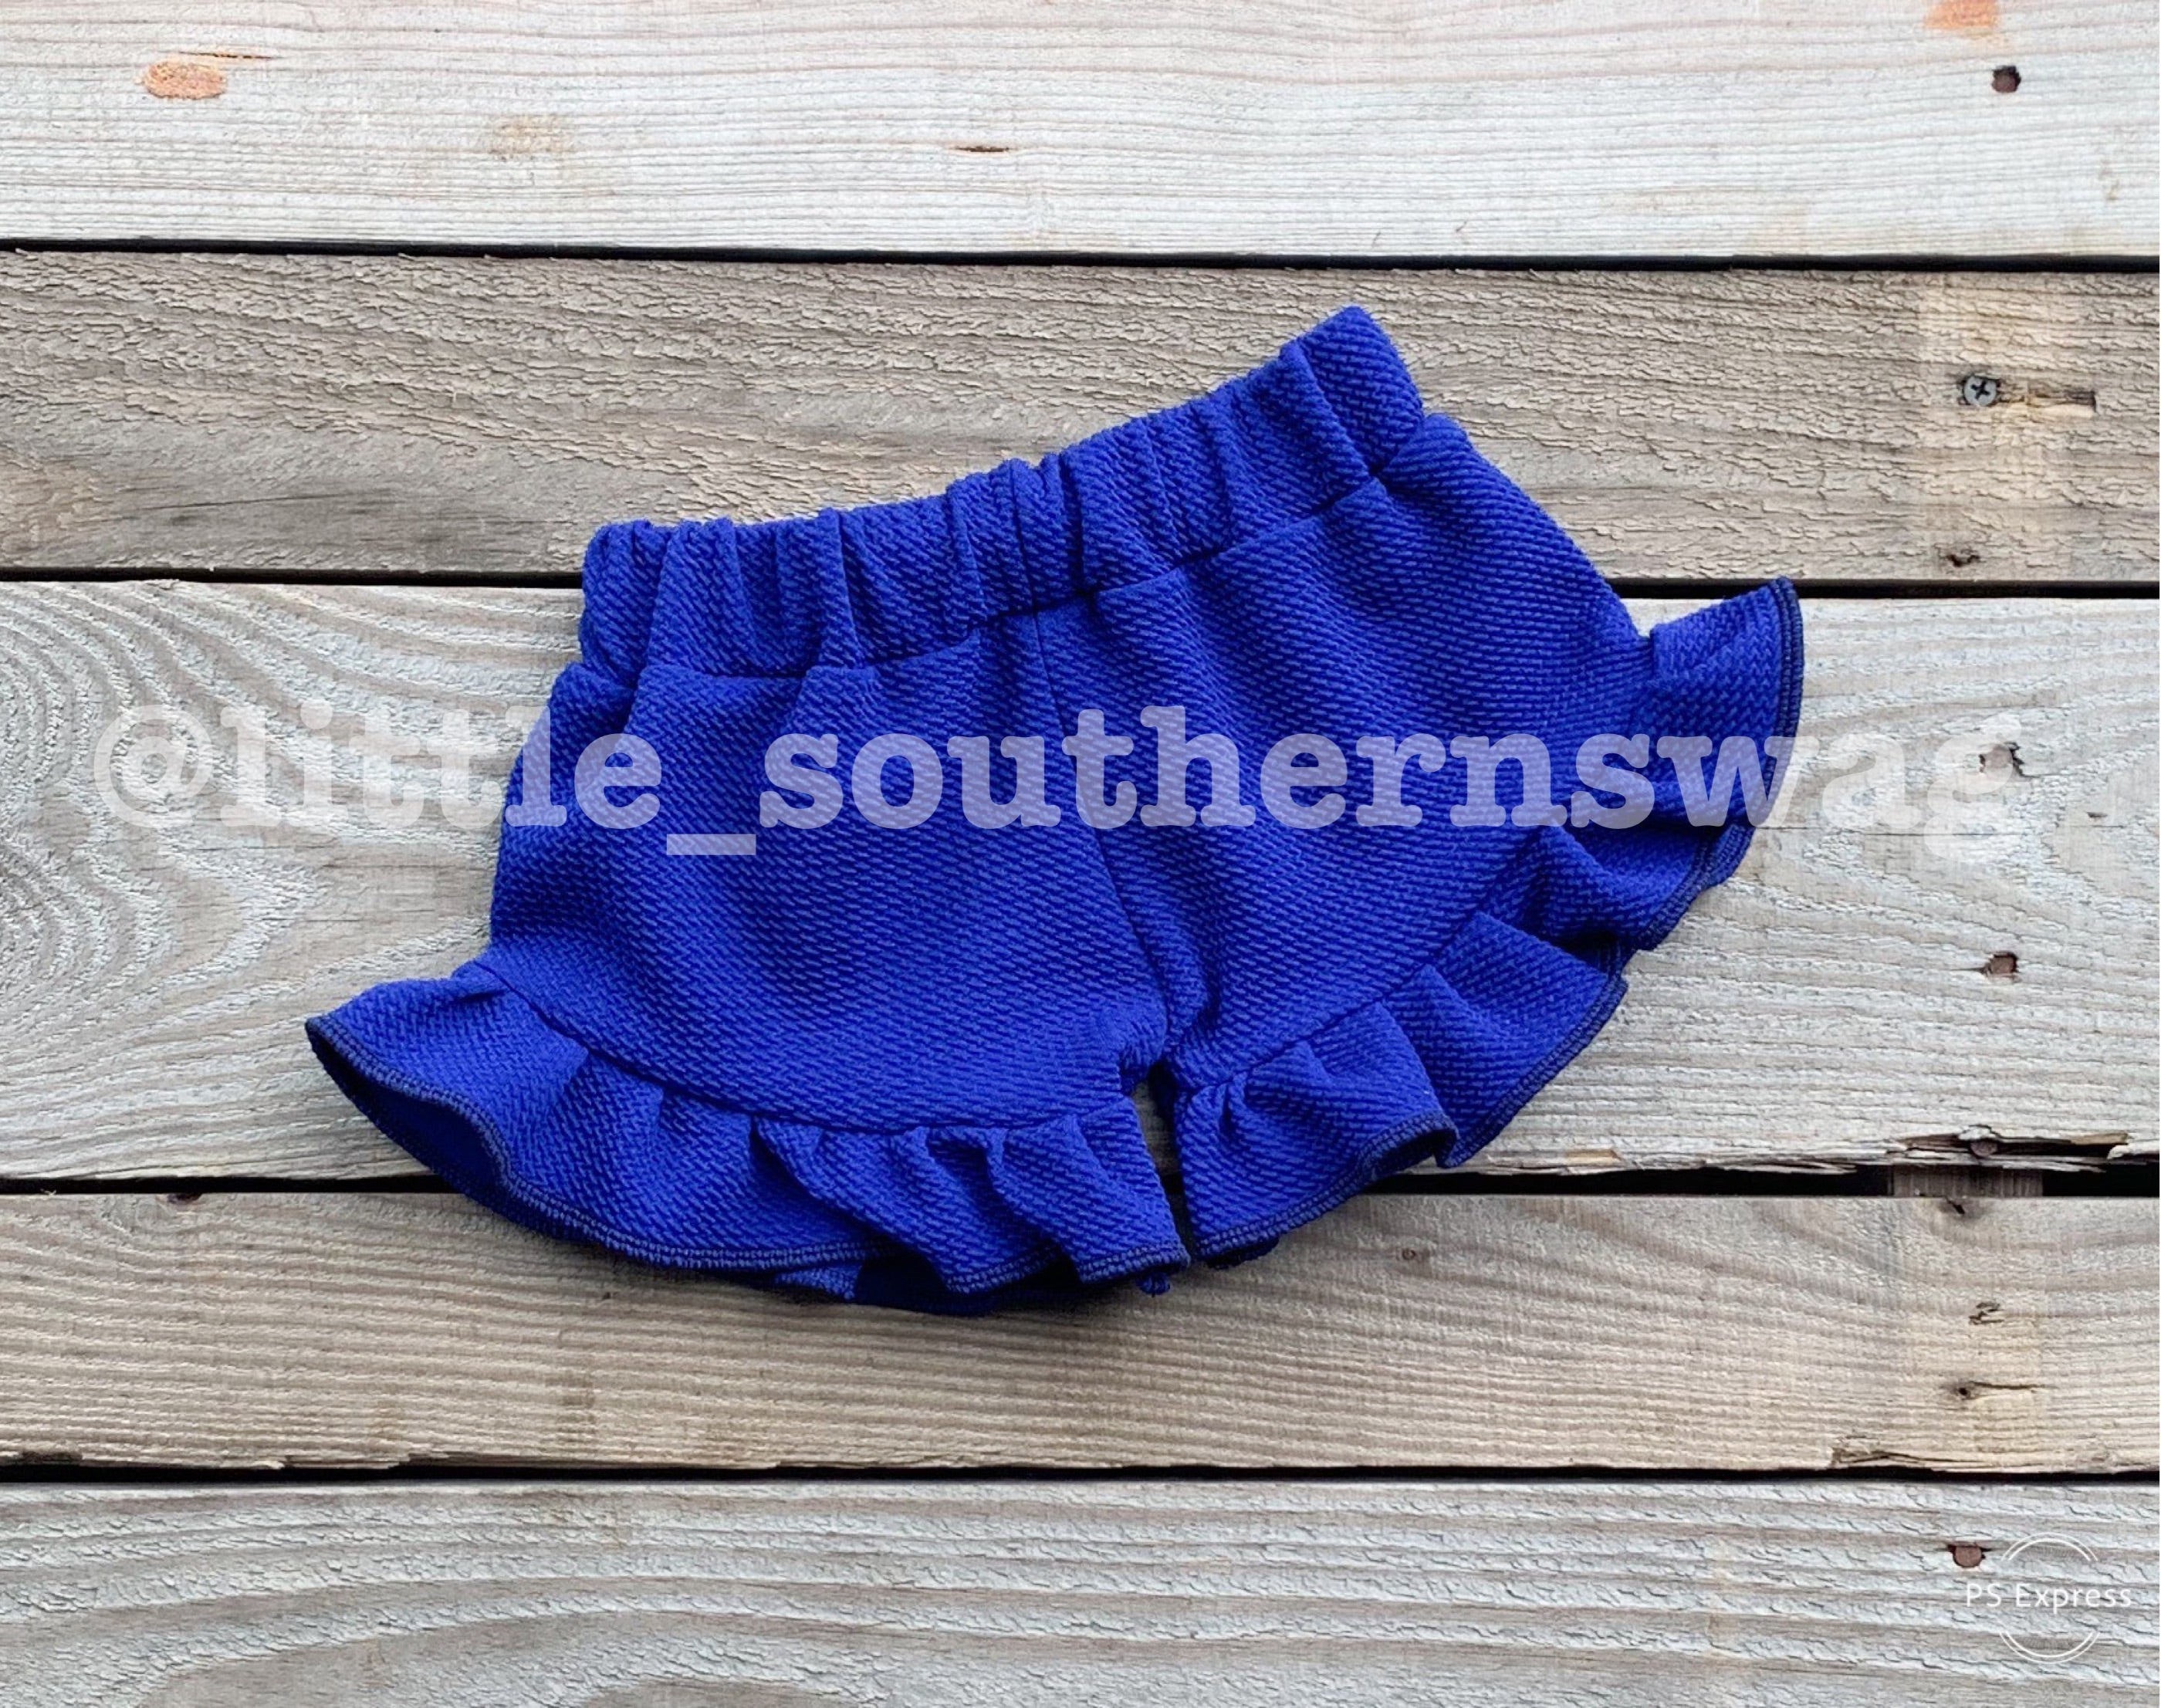 Cobalt - Little Southern Swag